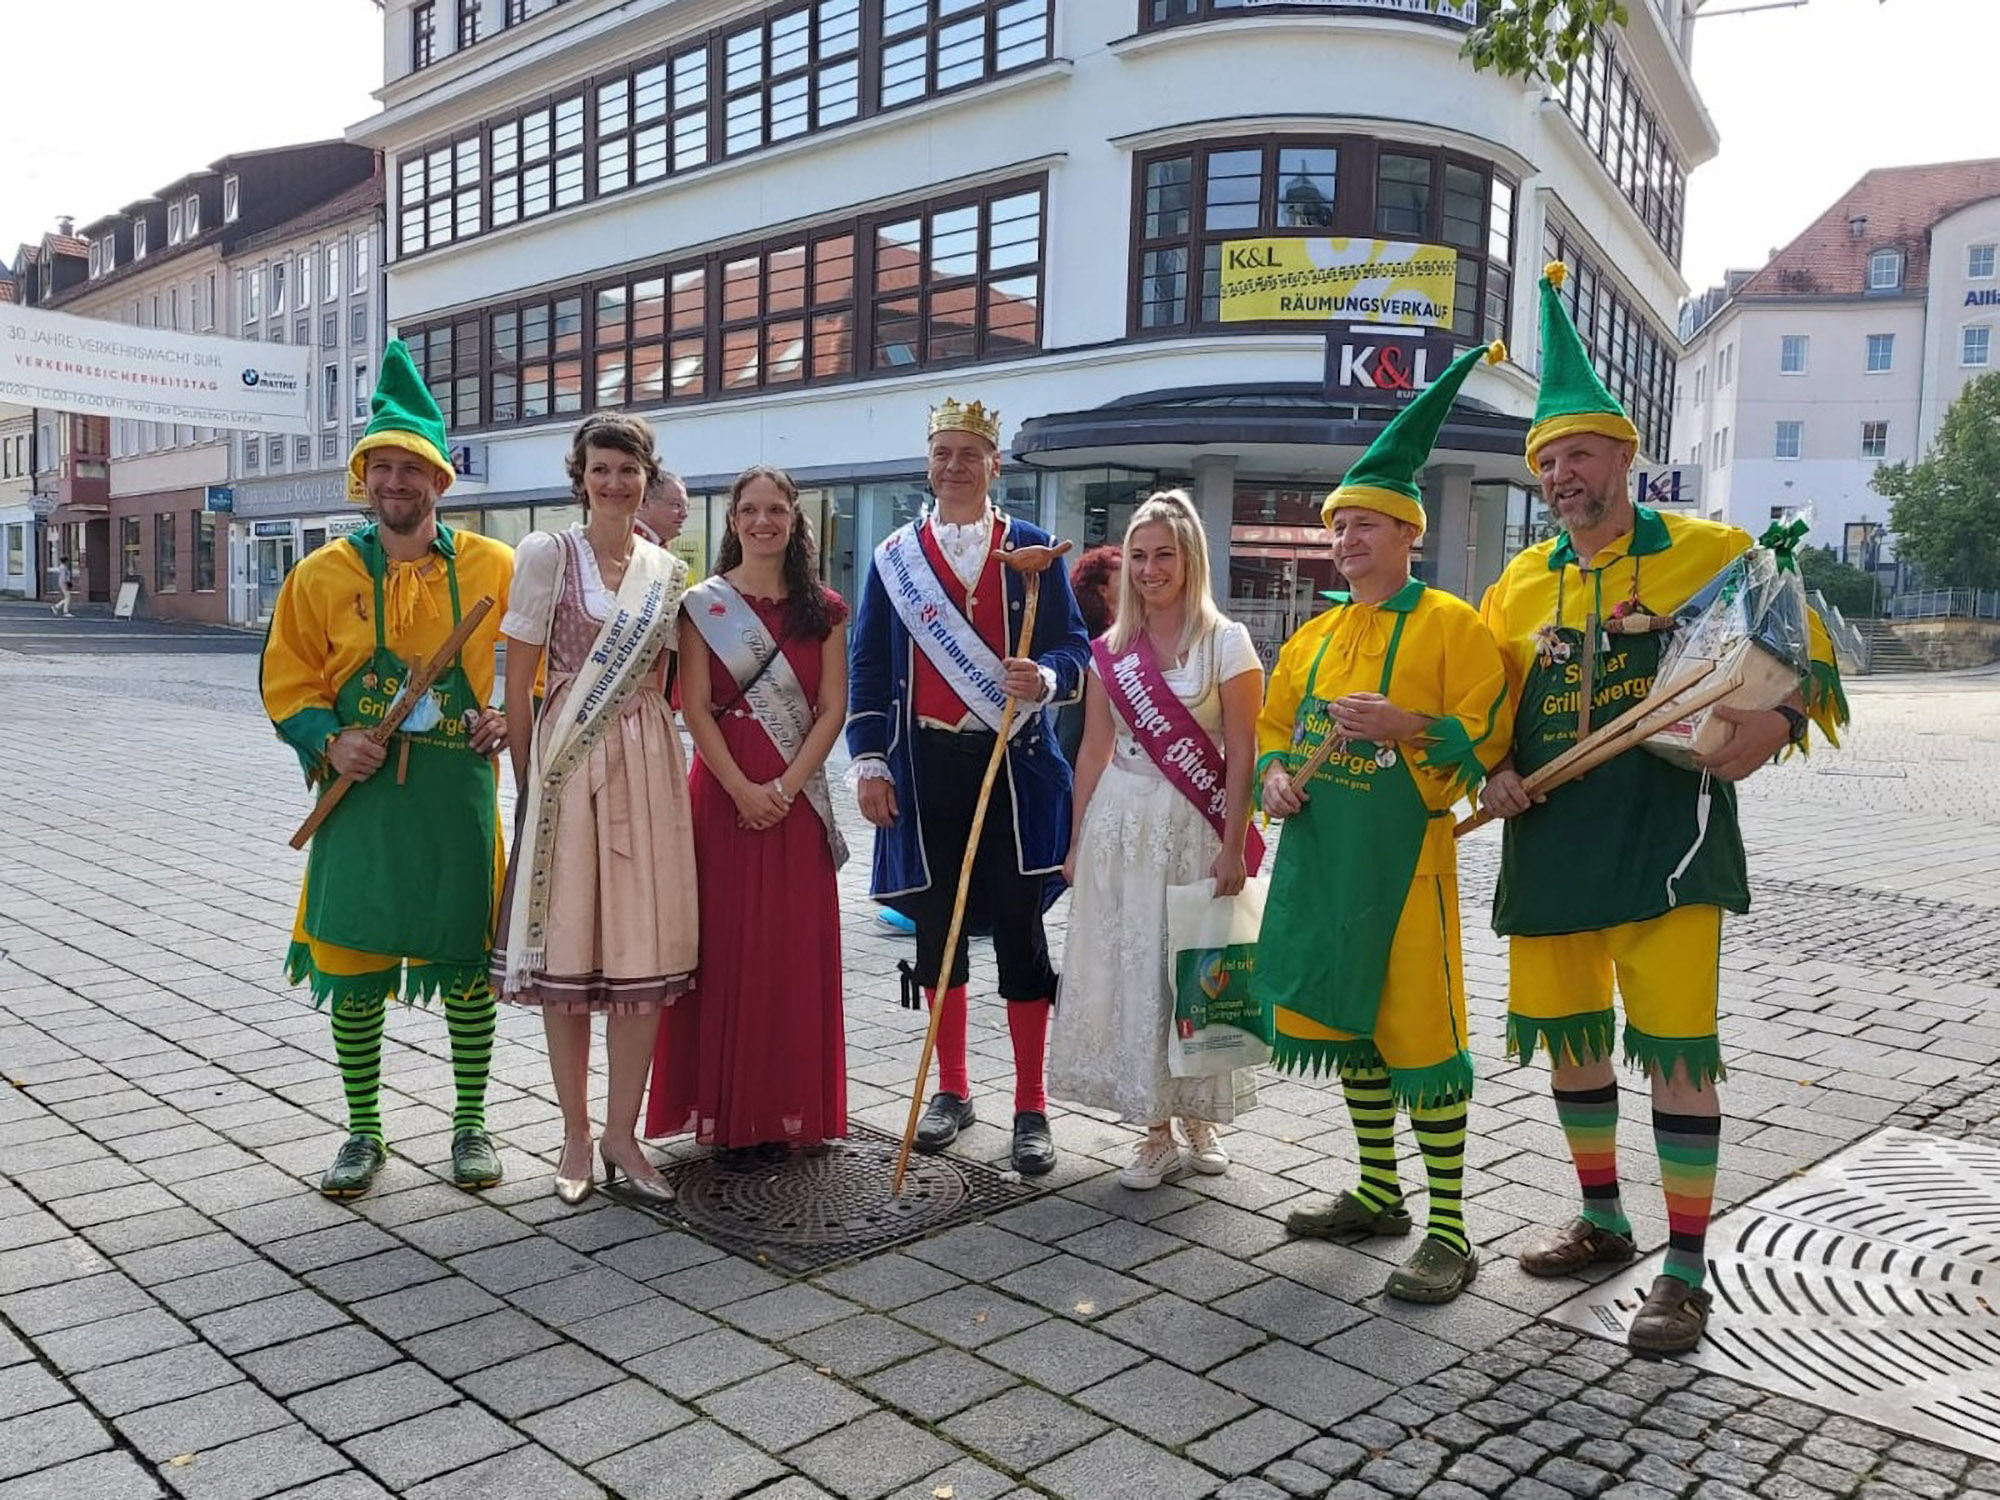 Meet the Minister of Bratwurst, Thuringen's Newest Link to its Prized Pork Product